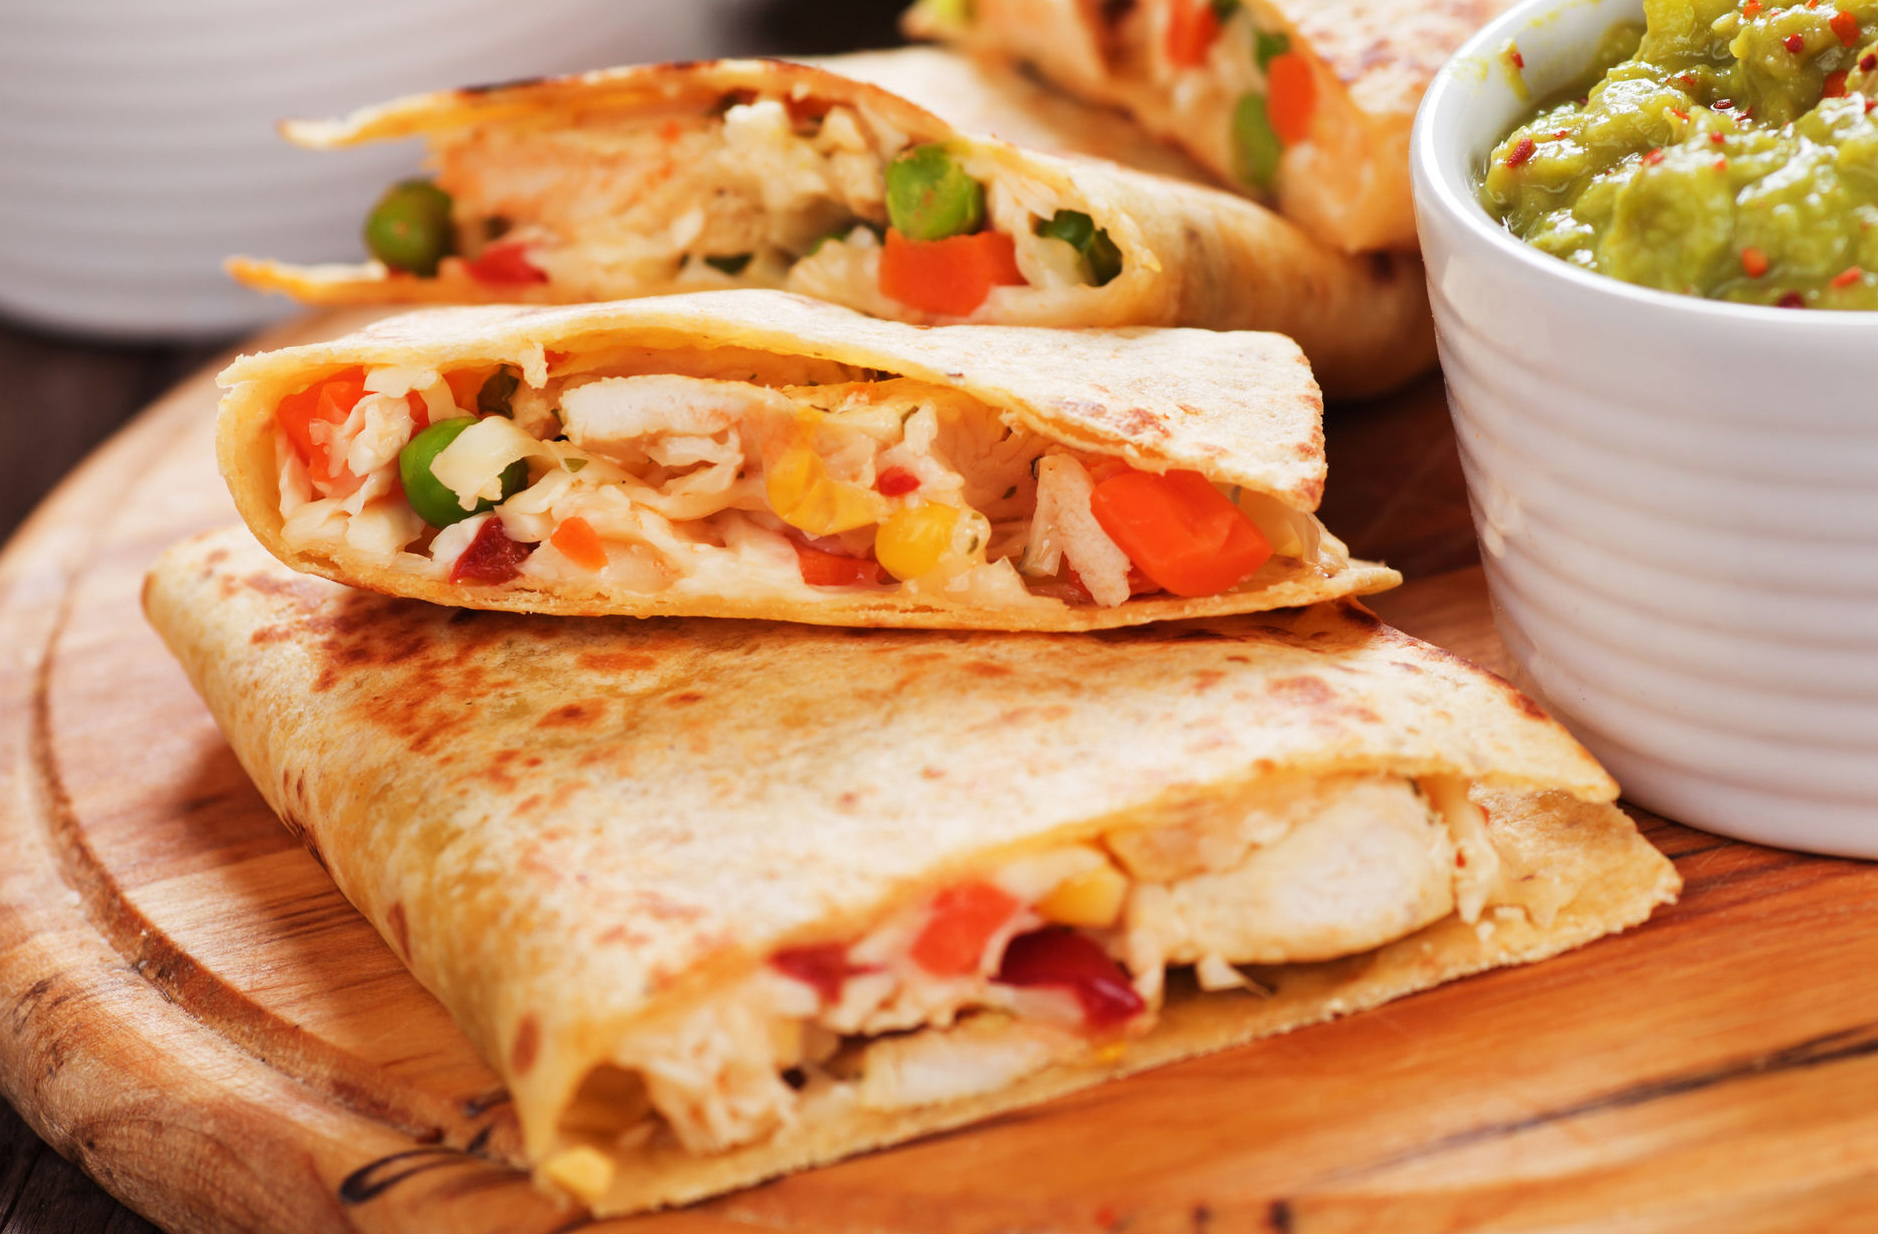 Mexican quesadillas with chicken meat, cheese and vegetables